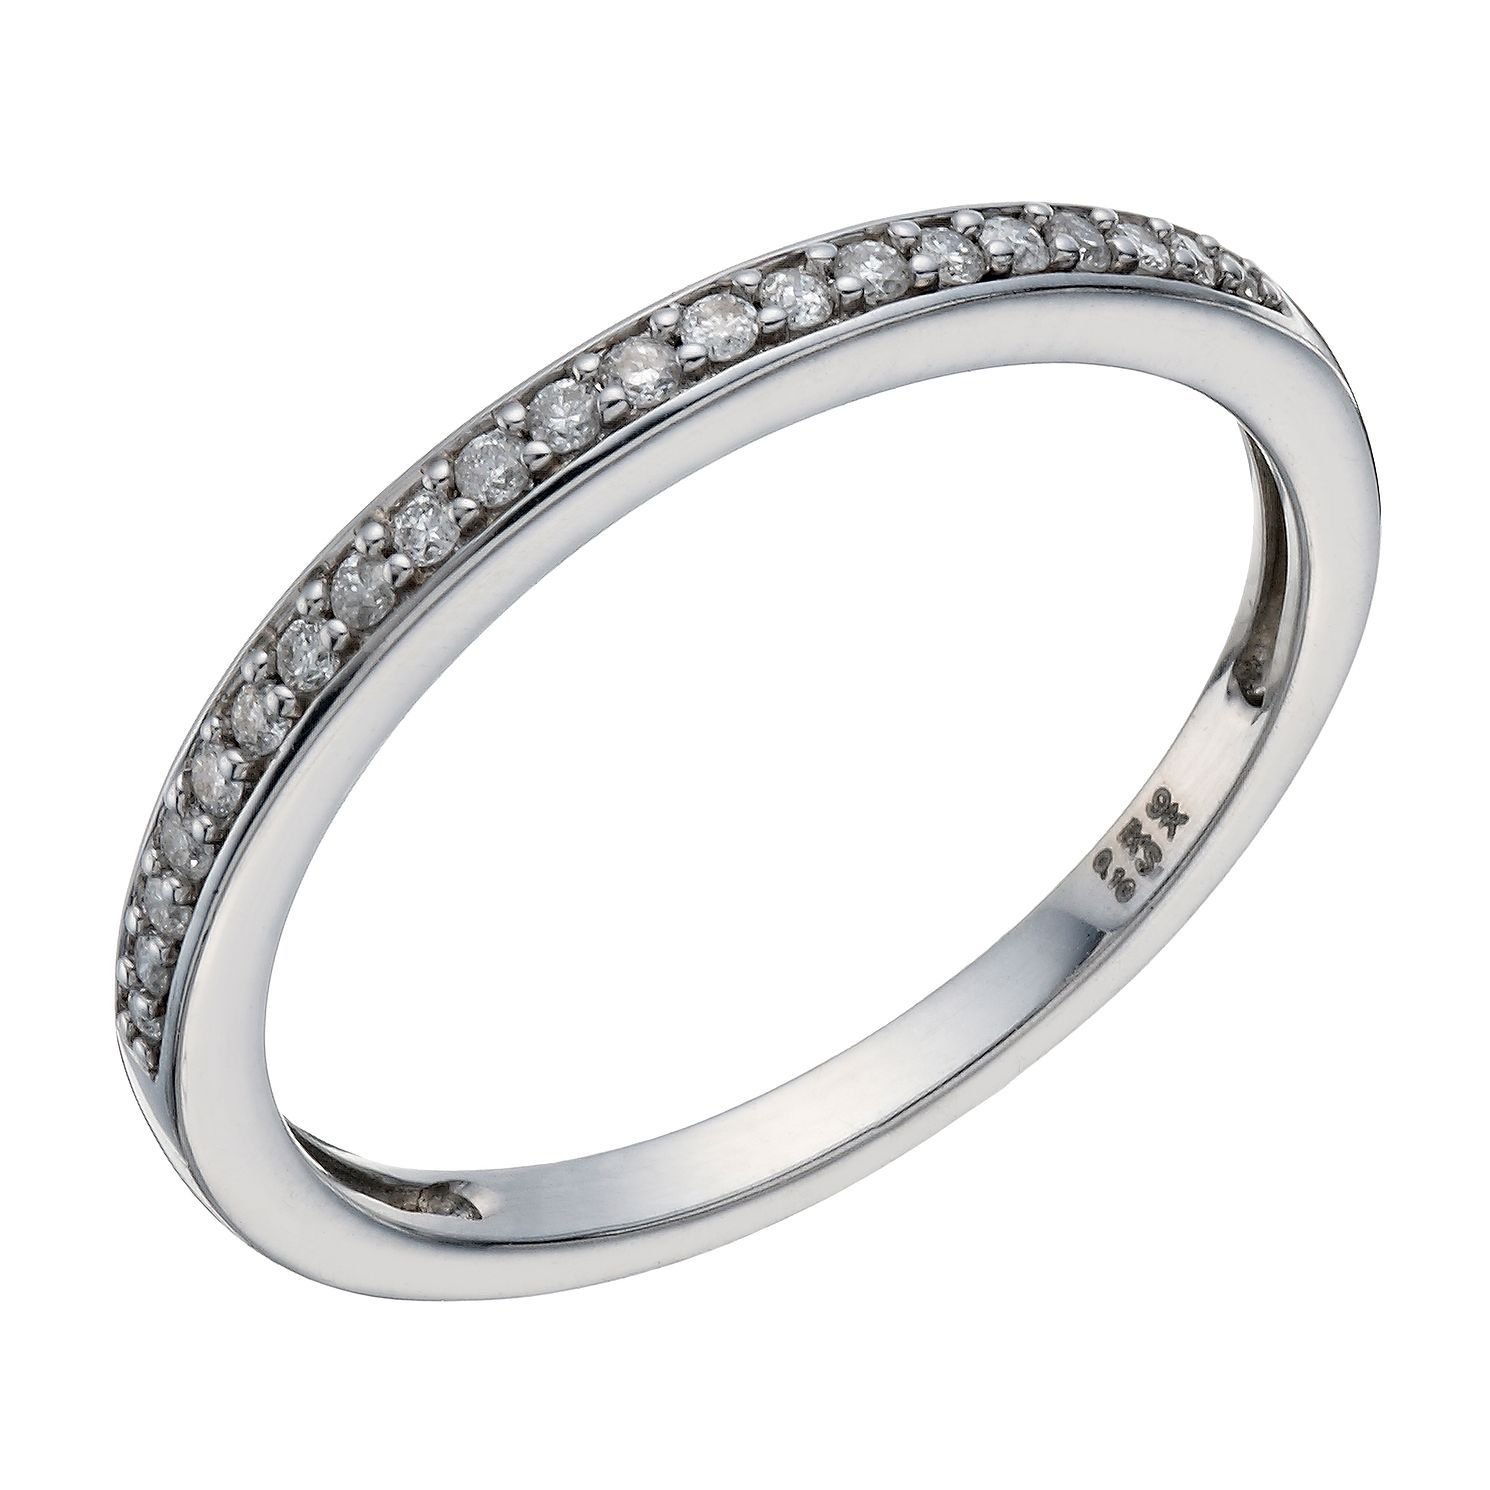 Perfect Fit 9ct White Gold Diamond Single Row Eternity Band - Product number 1761633